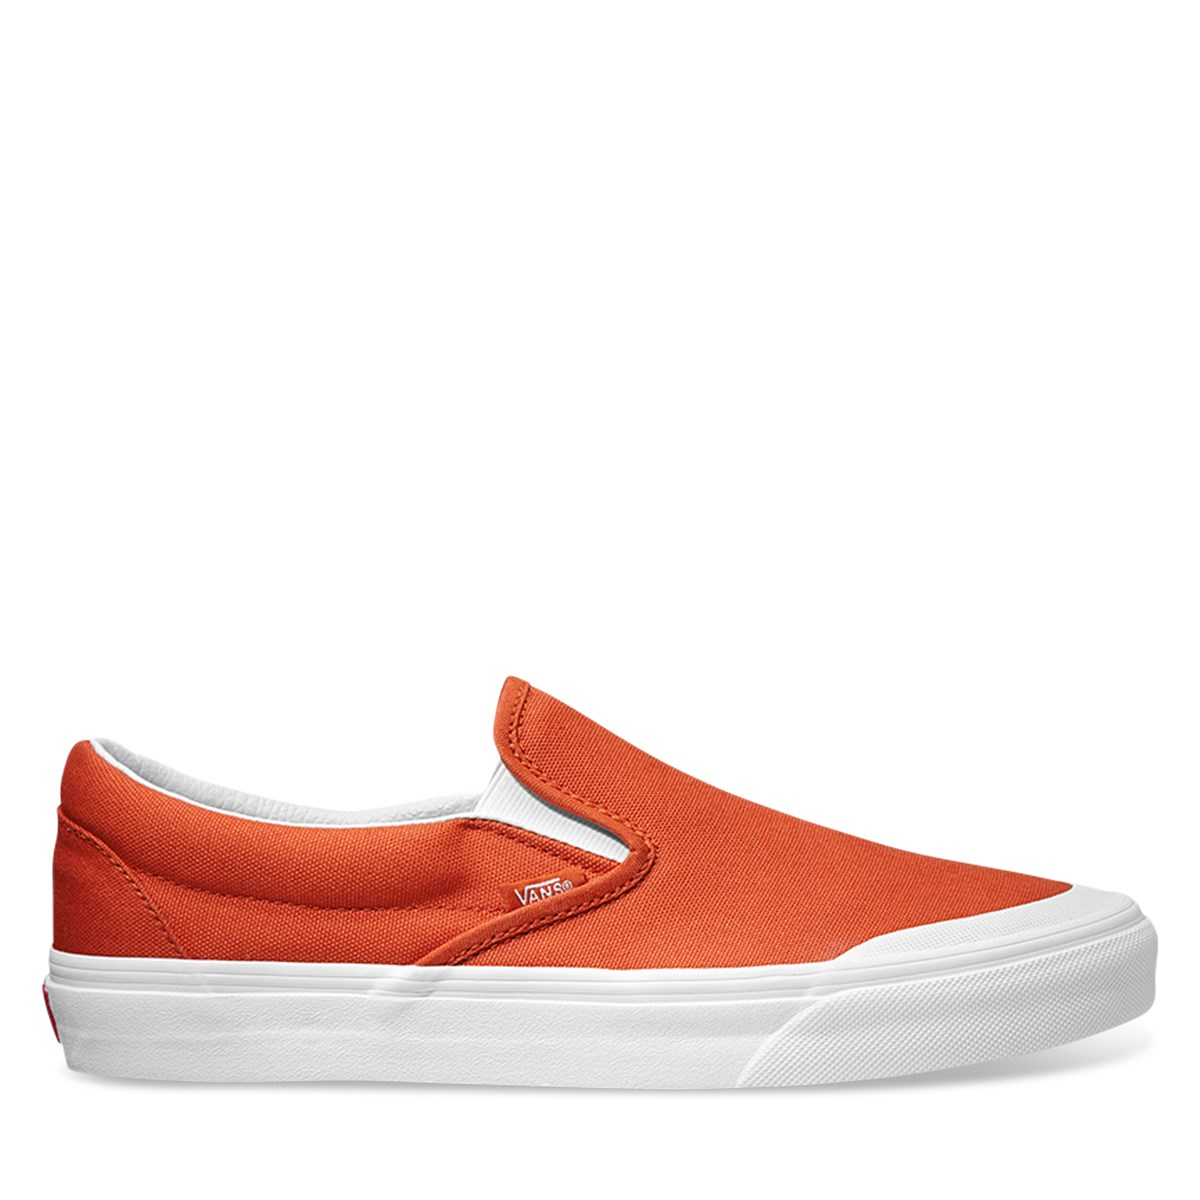 Men's Classic Slip-On in Orange